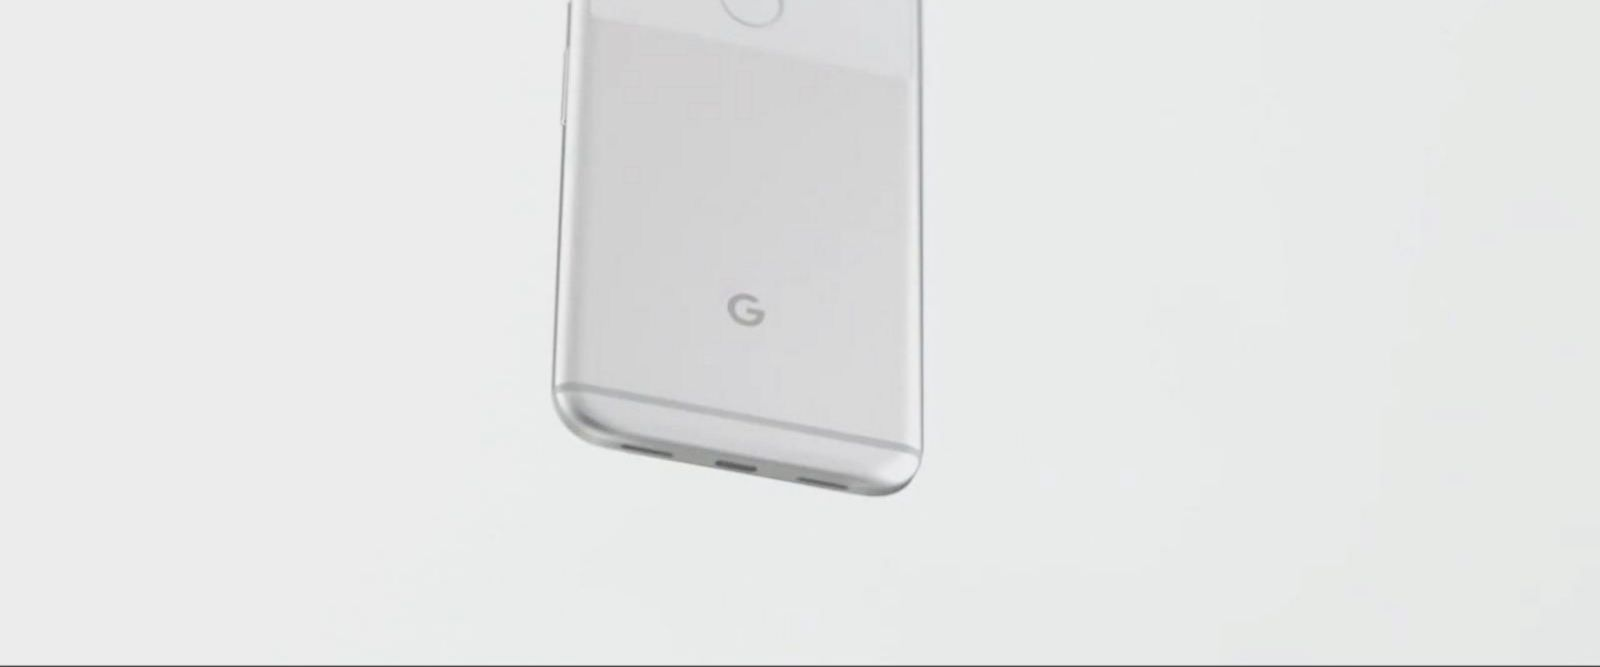 VIDEO: New problems reported for the Google Pixel 2xl smartphones